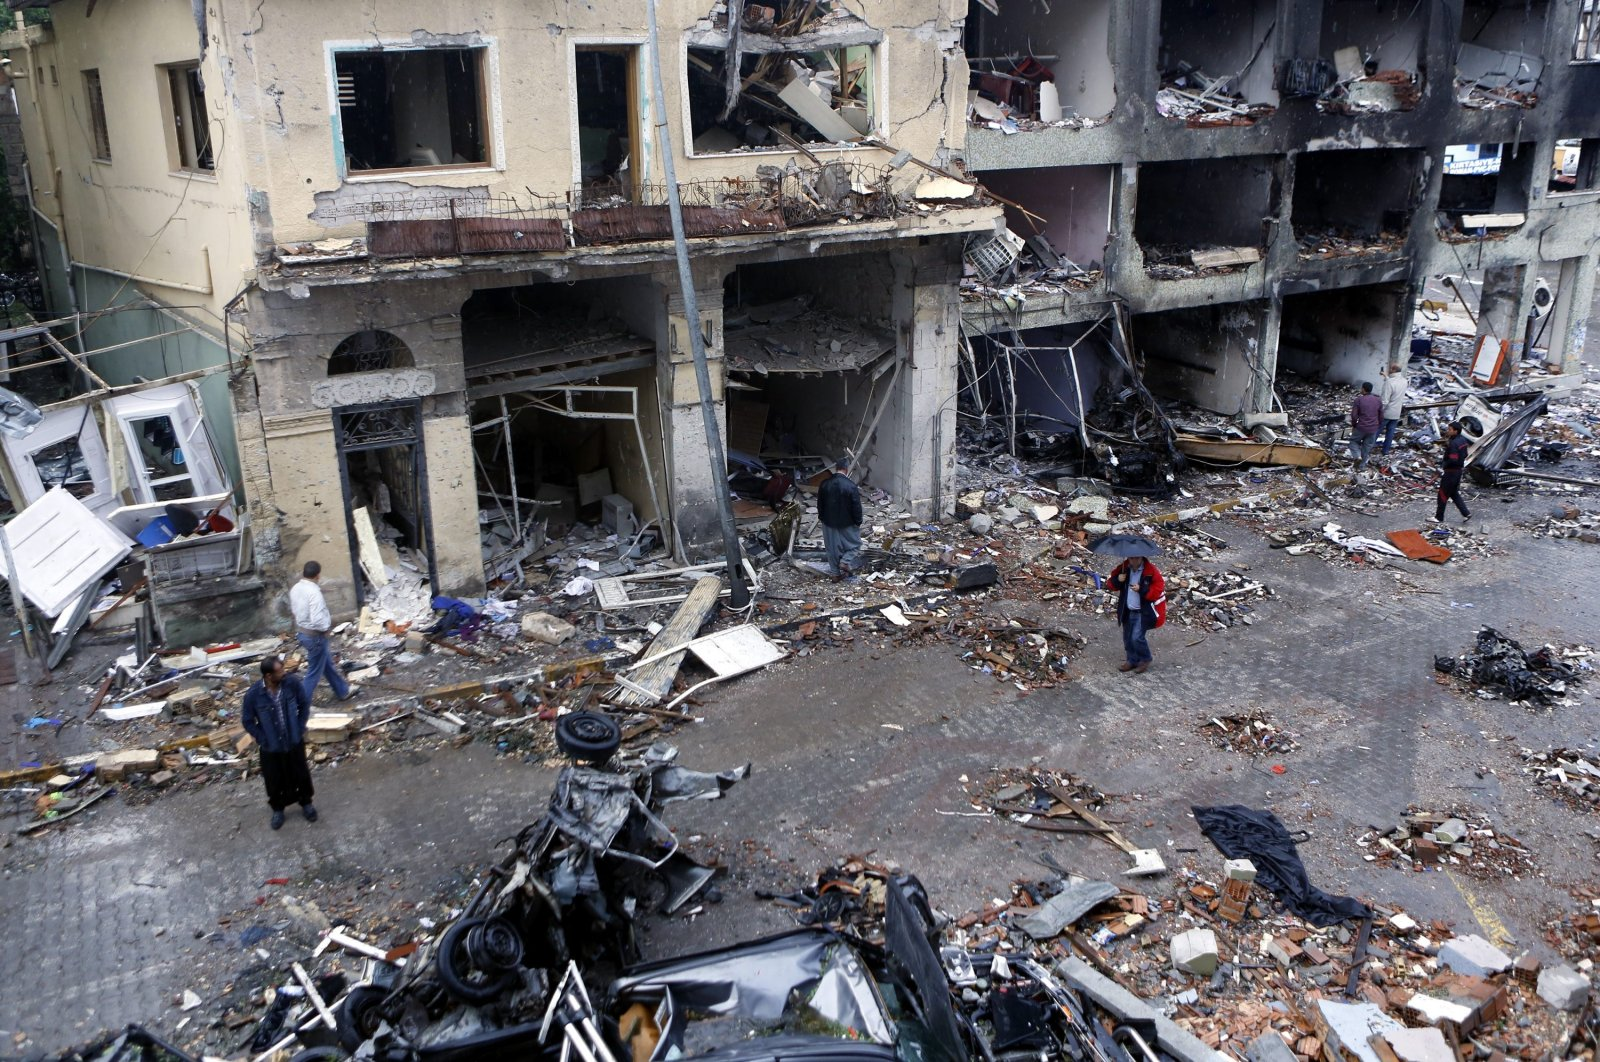 The aftermath of two bombings in the Reyhanlı district of Hatay, southern Turkey, May 11, 2013. (Photo by Emin Özmen)